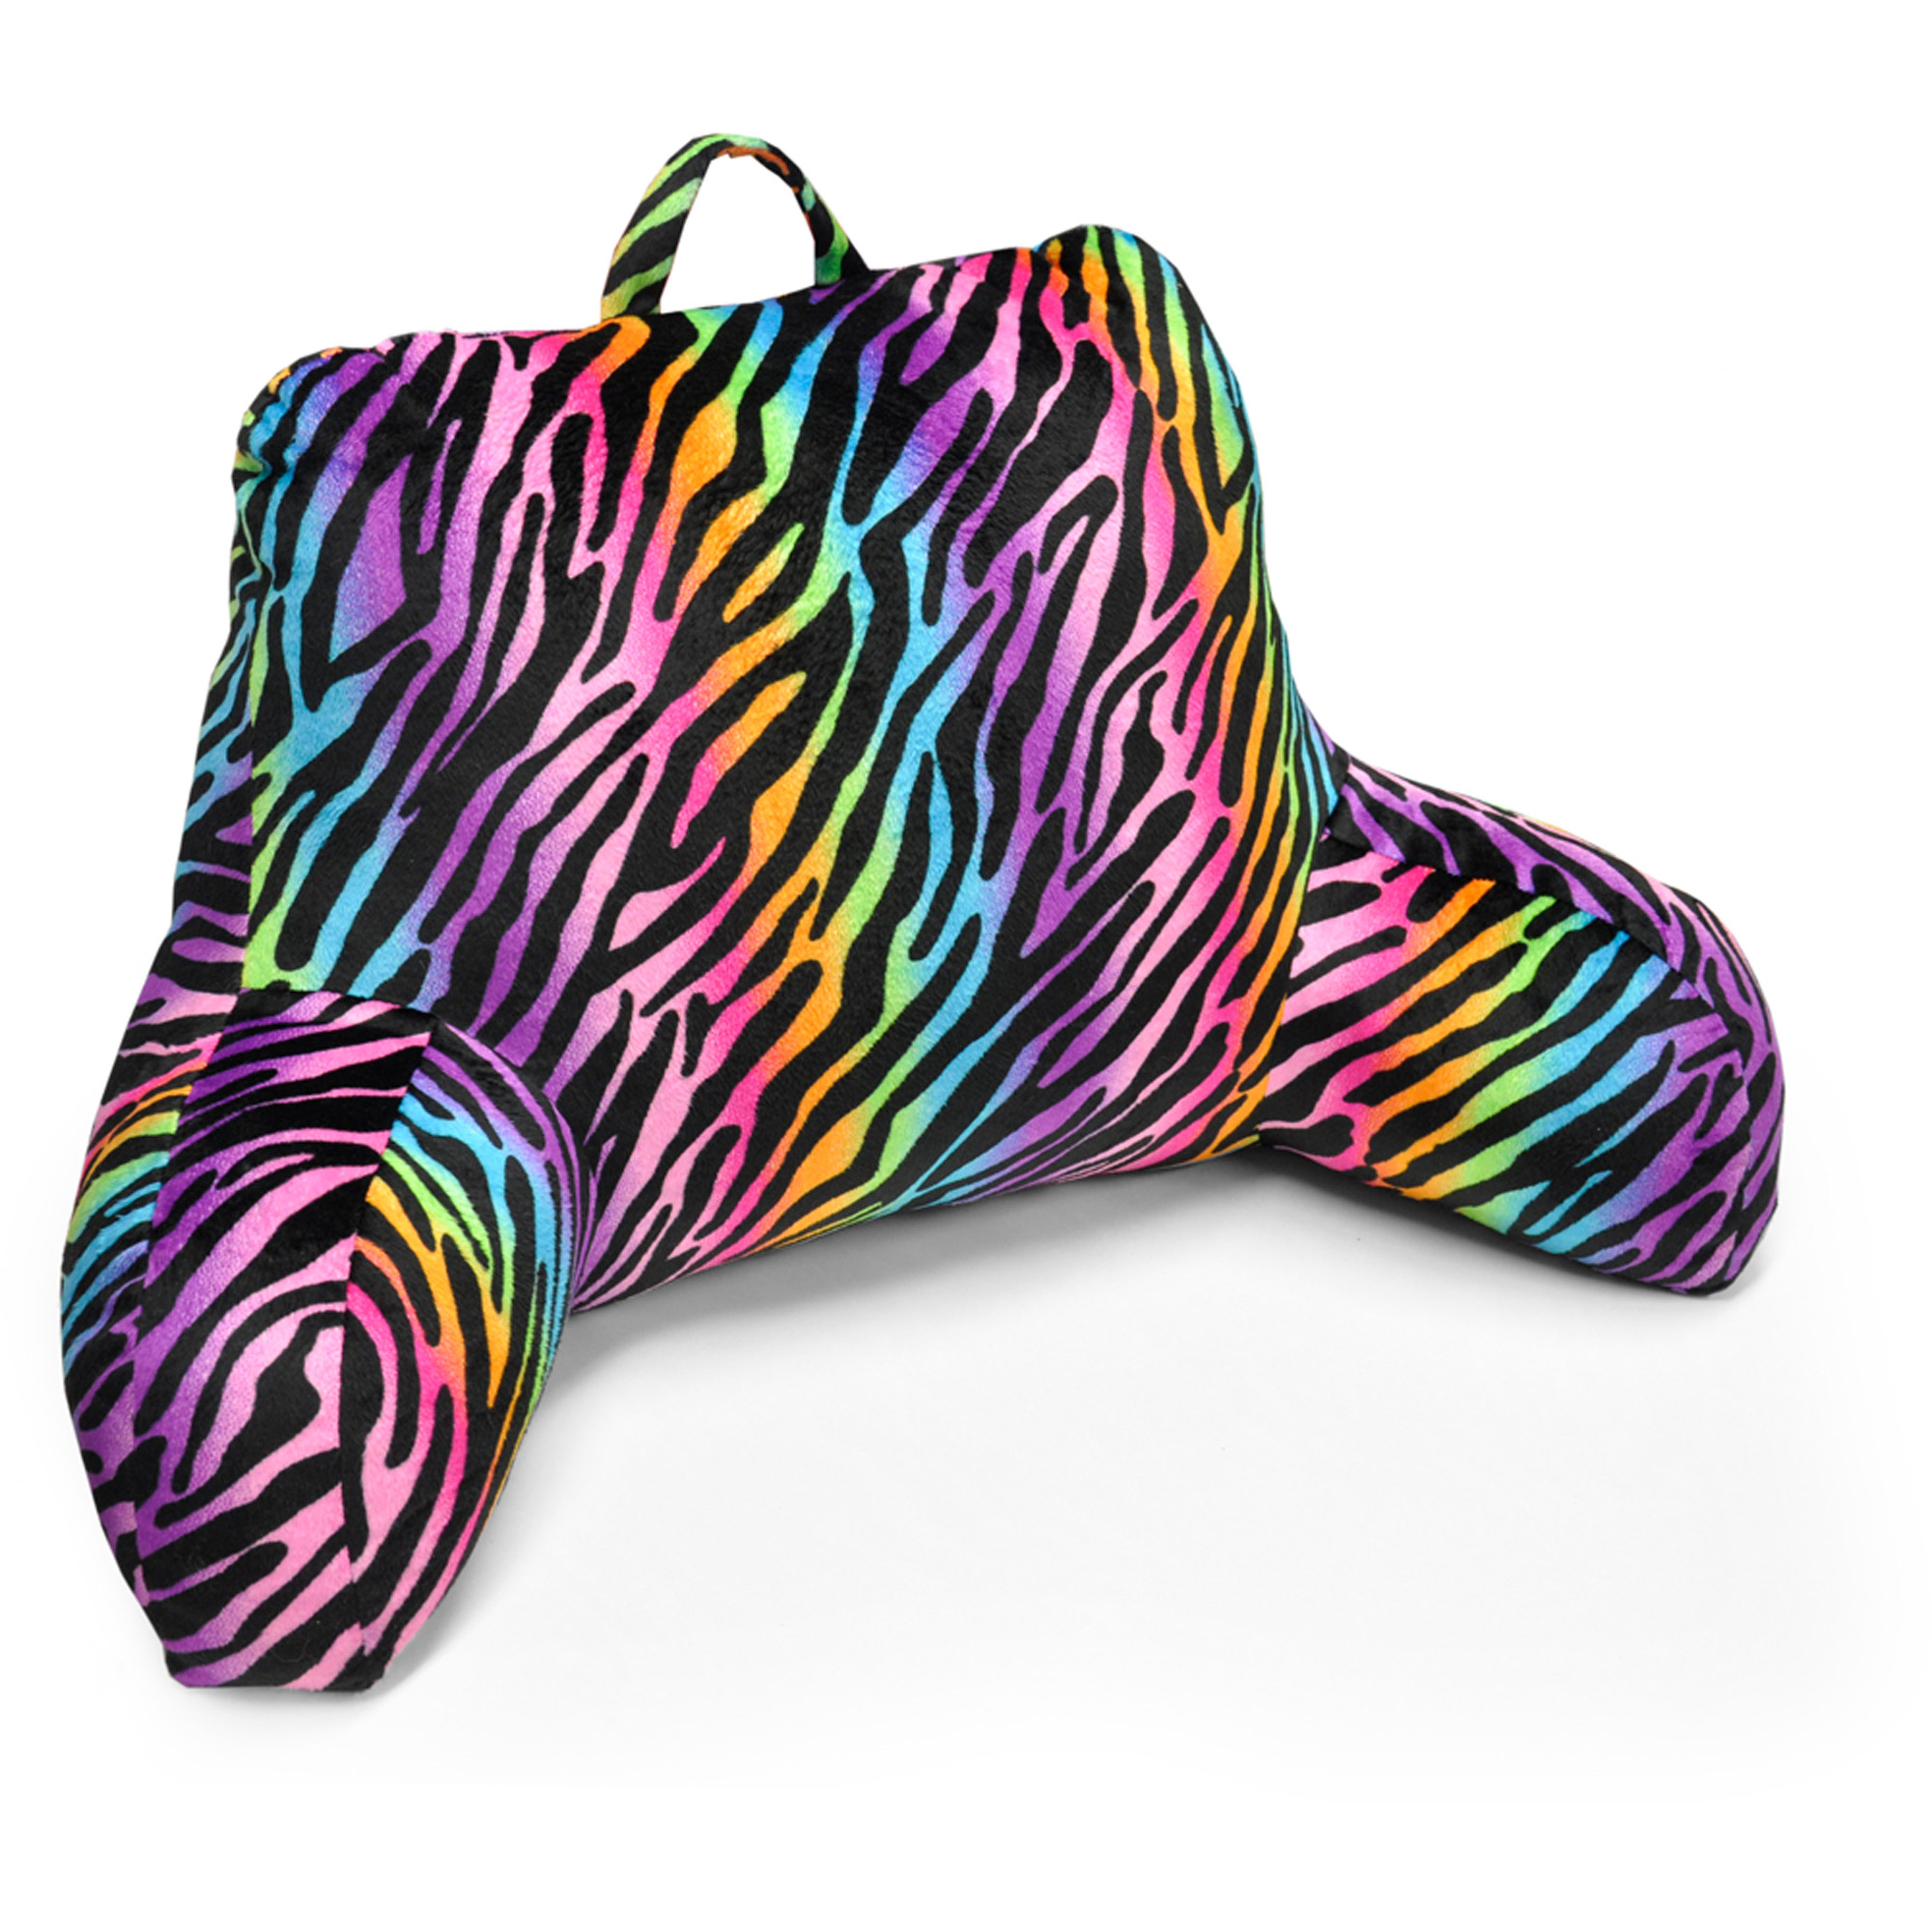 Bed rest pillow walmart - Your Zone Rainbow Zebra Backrest